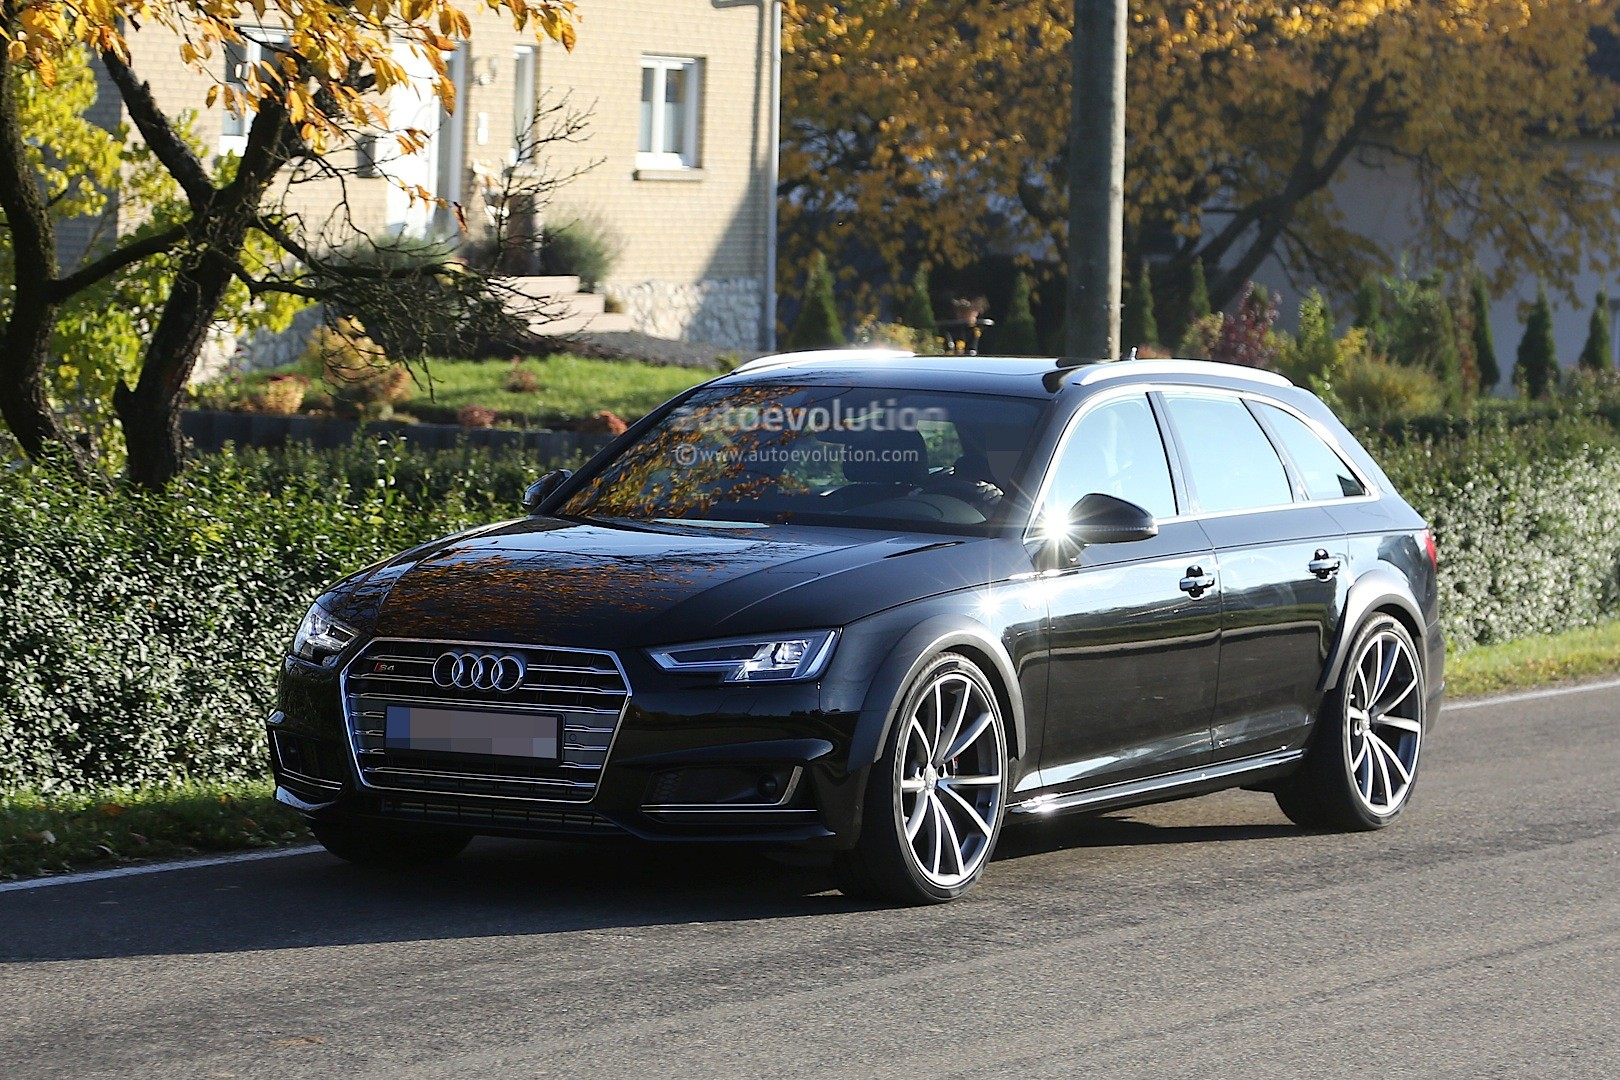 early 2018 audi rs4 avant chassis testing mule this could be it autoevolution. Black Bedroom Furniture Sets. Home Design Ideas